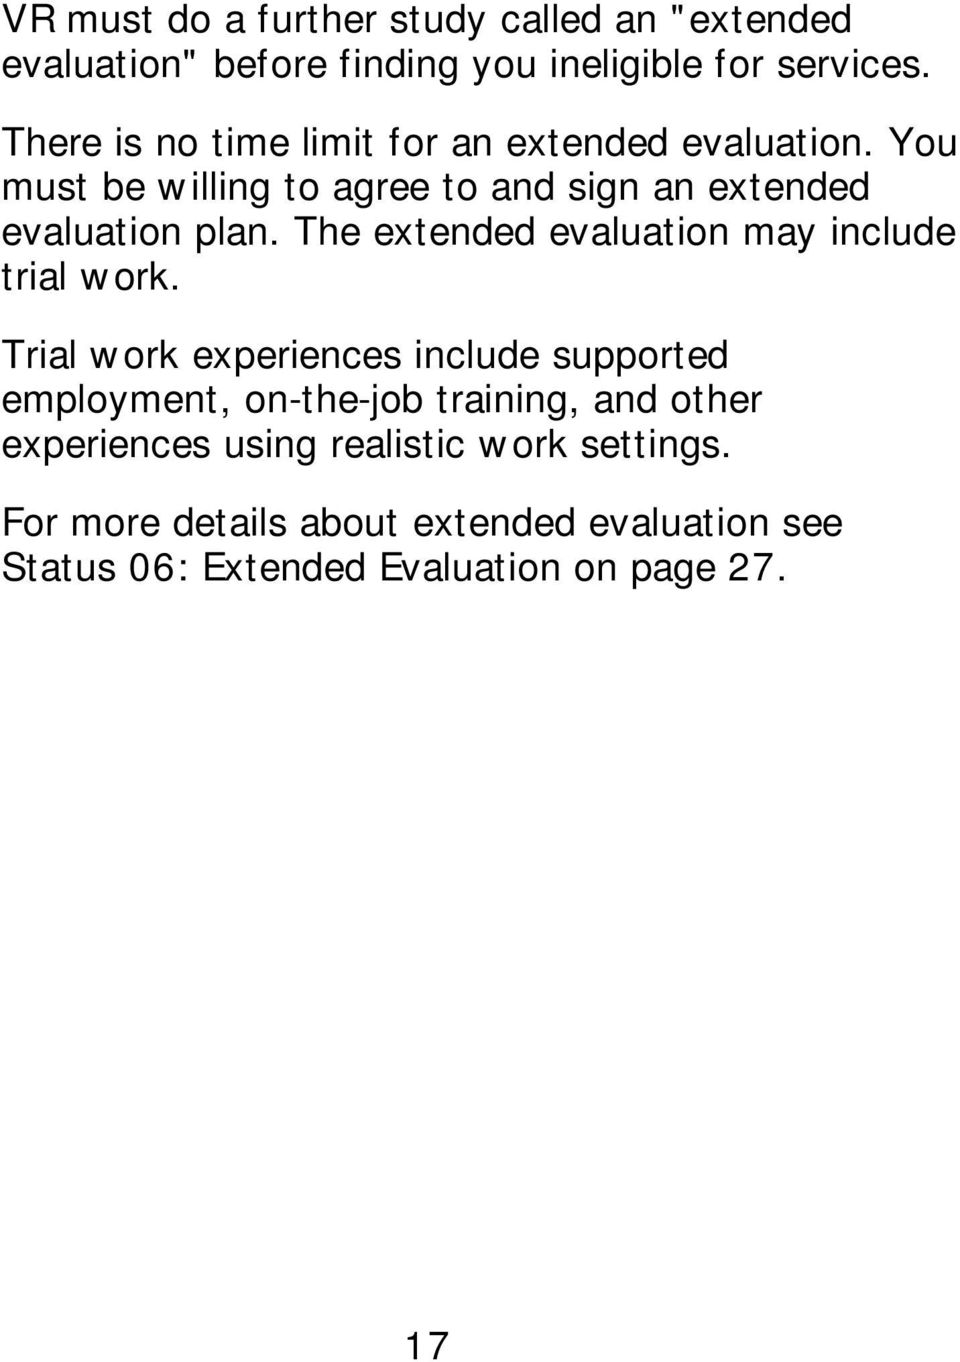 The extended evaluation may include trial work.